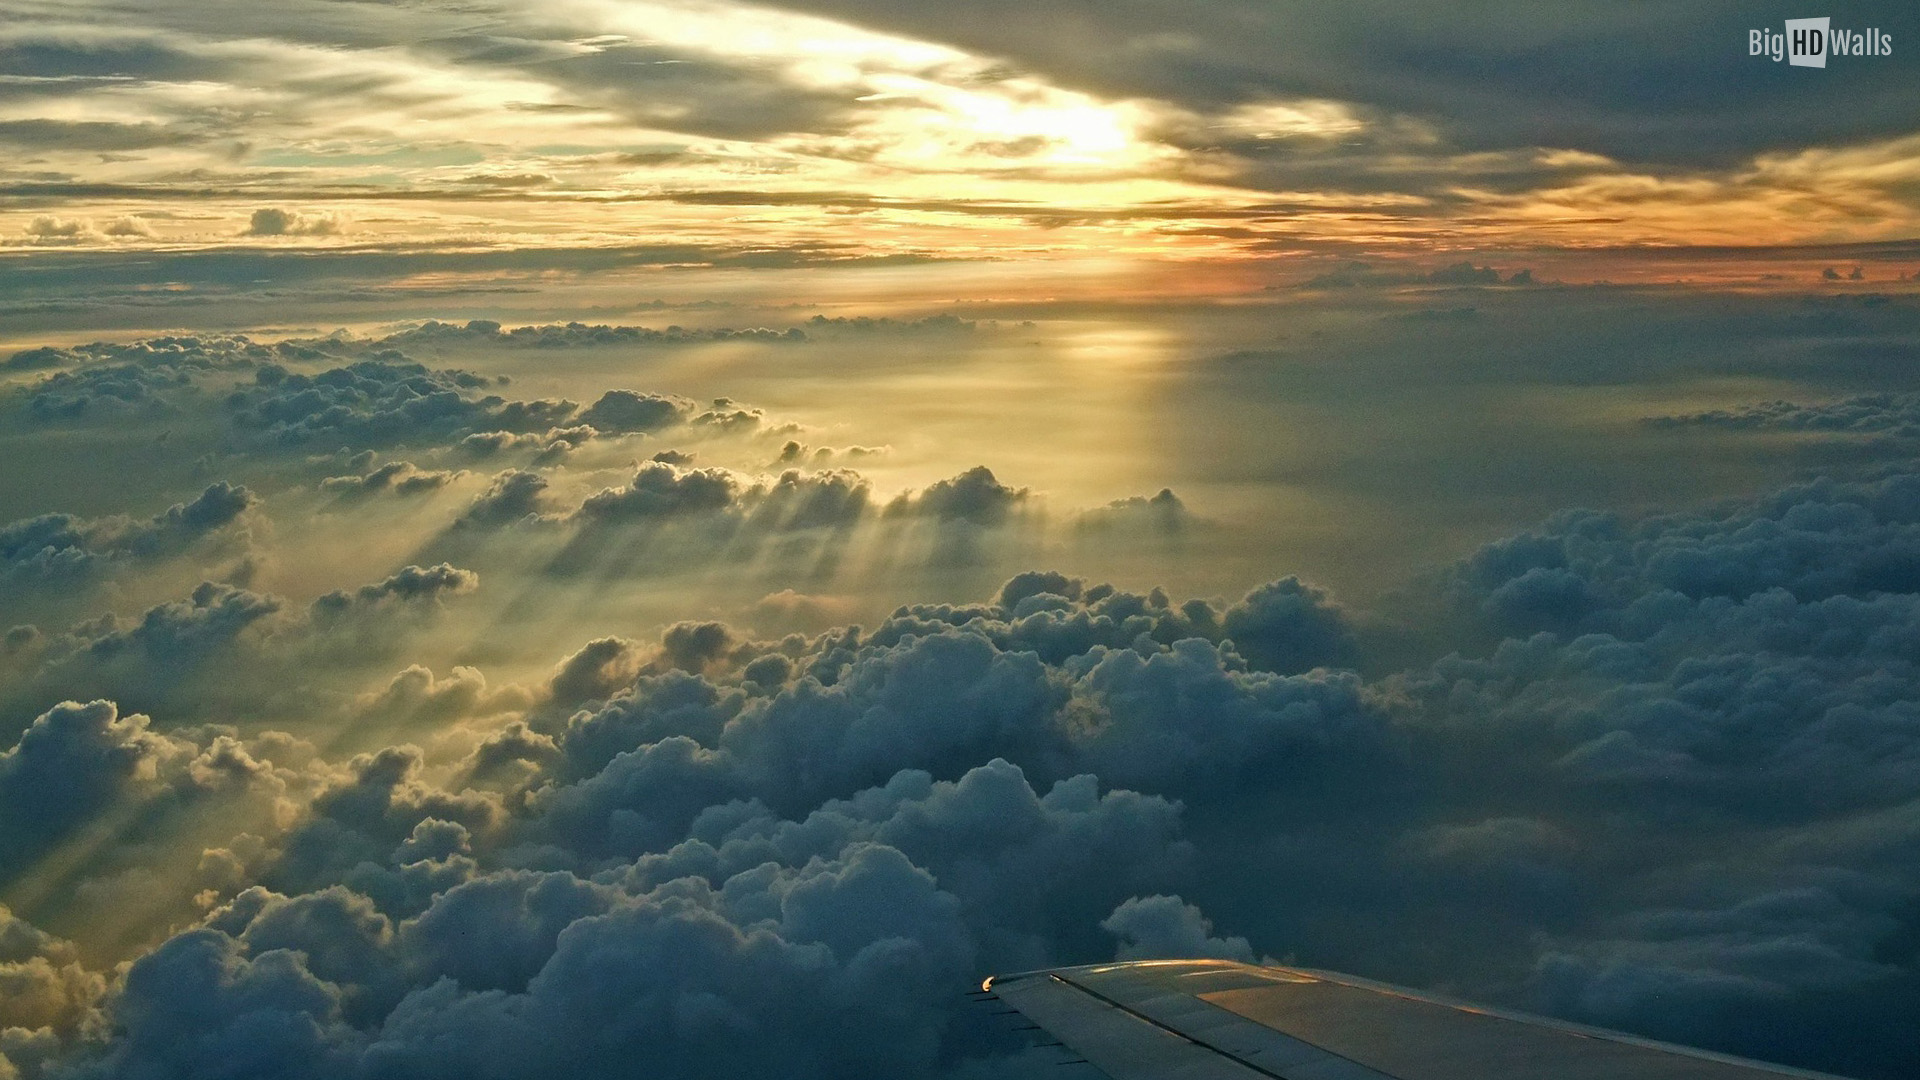 of sunset taken from a plane Download this sunset HD Wallpaper 1920x1080